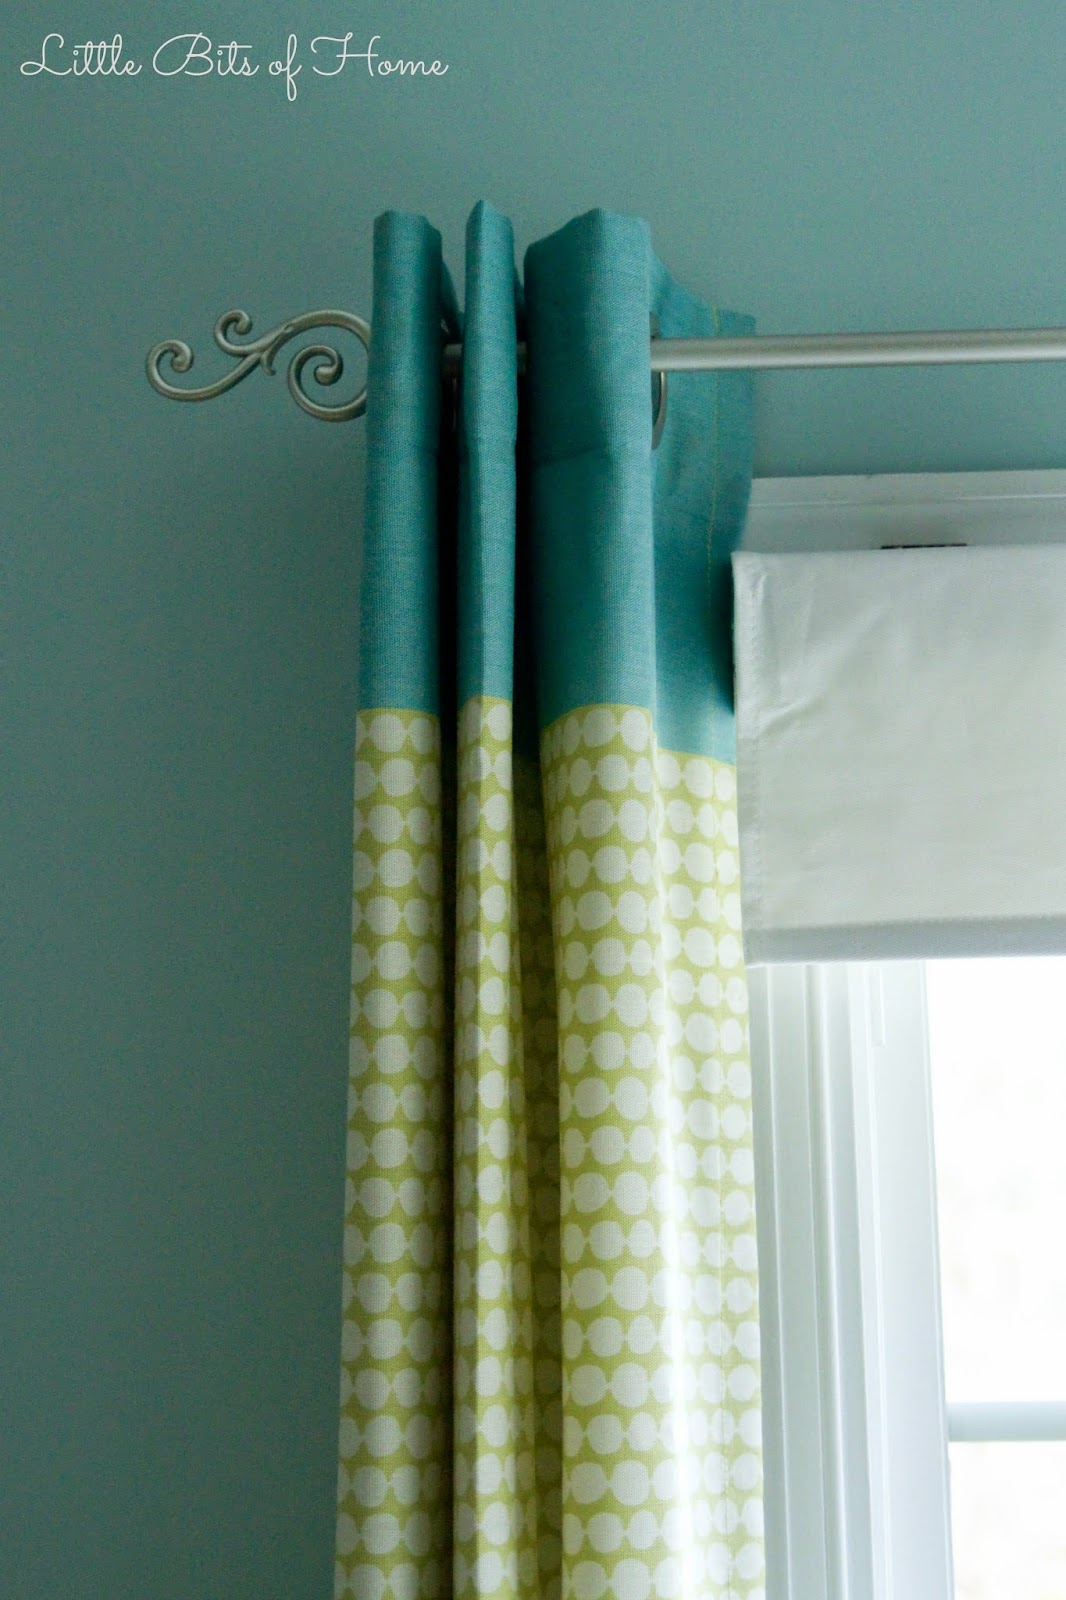 ... These curtains go great and even incorporate the blue at the top! Yay